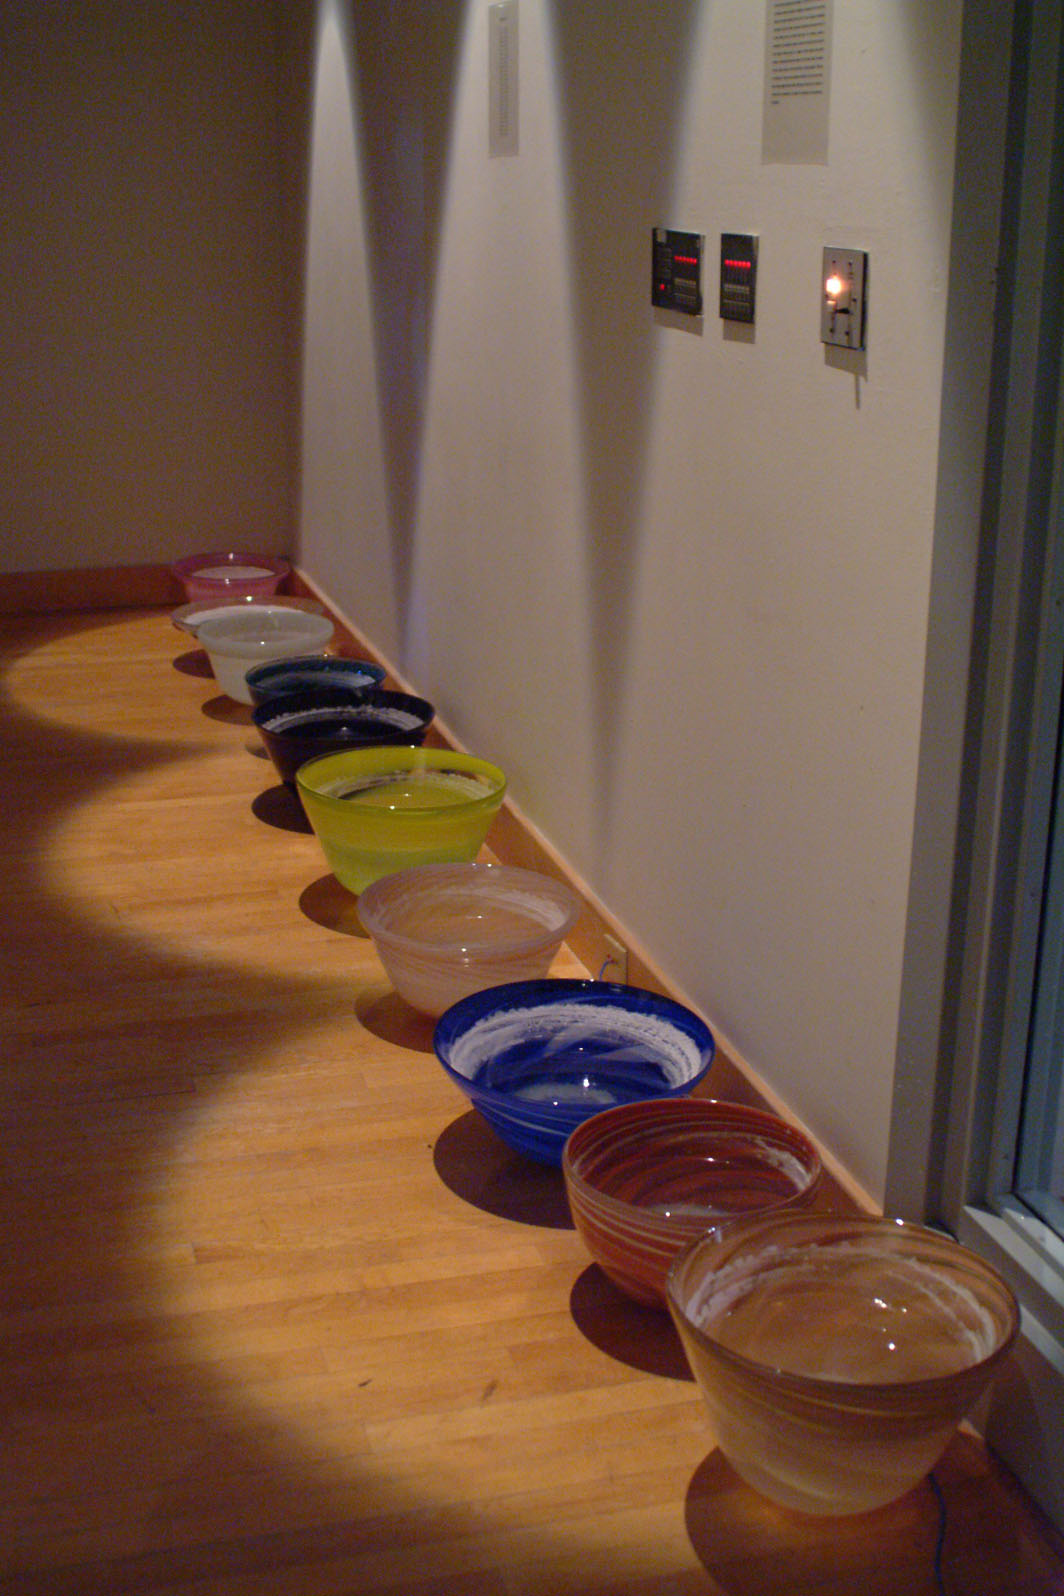 36 blown glass vesils containing sea water dimentions 18